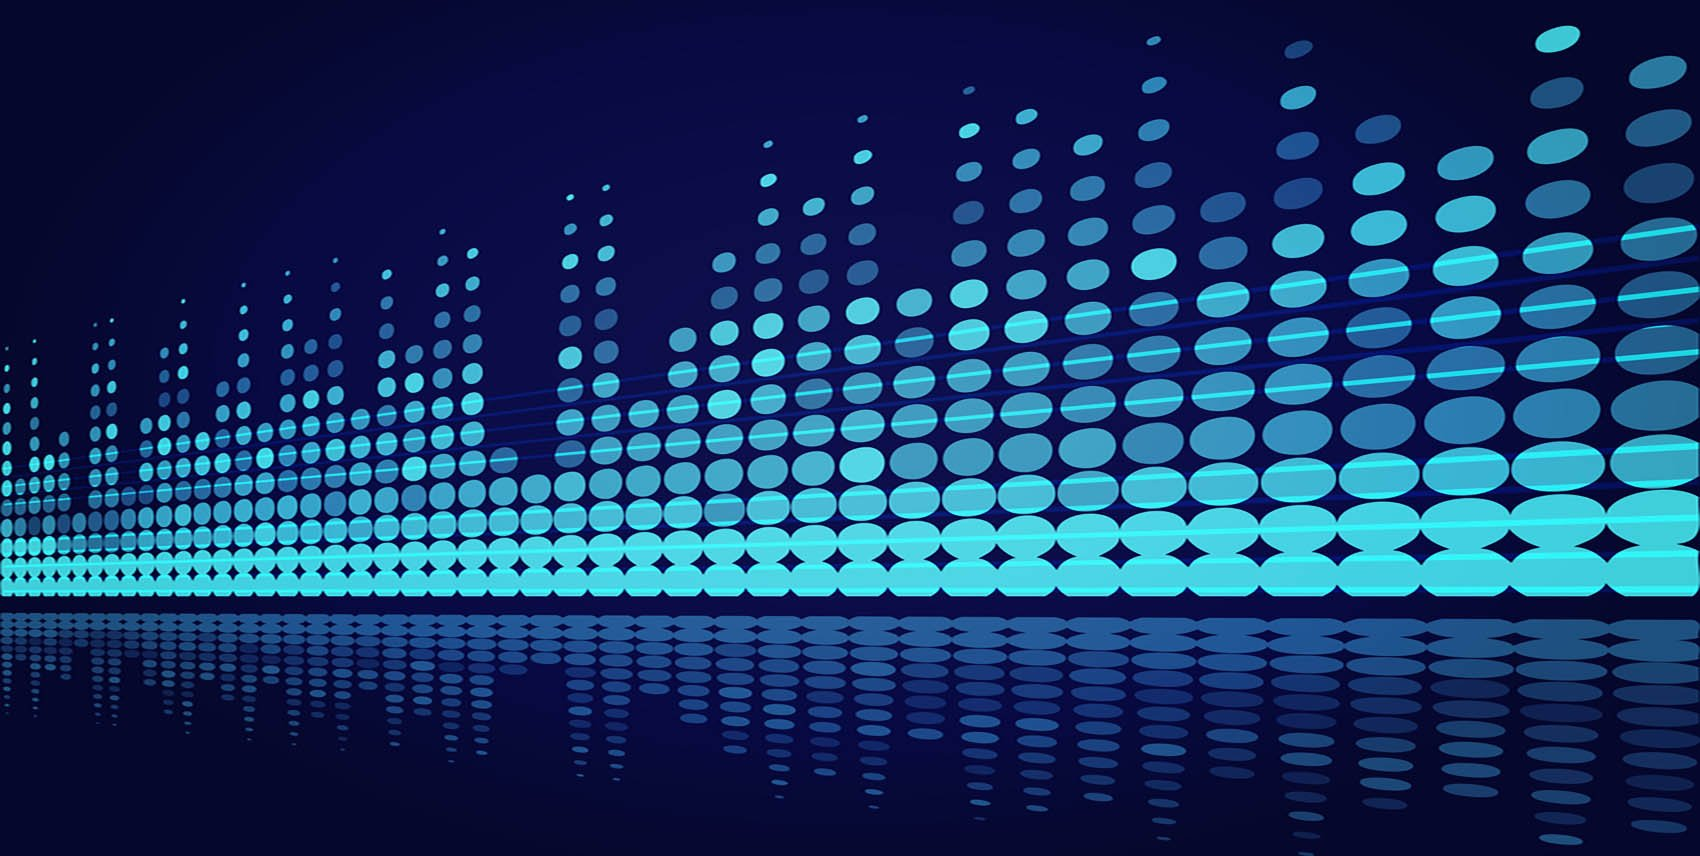 7 great websites for royalty free stock music and sound effects